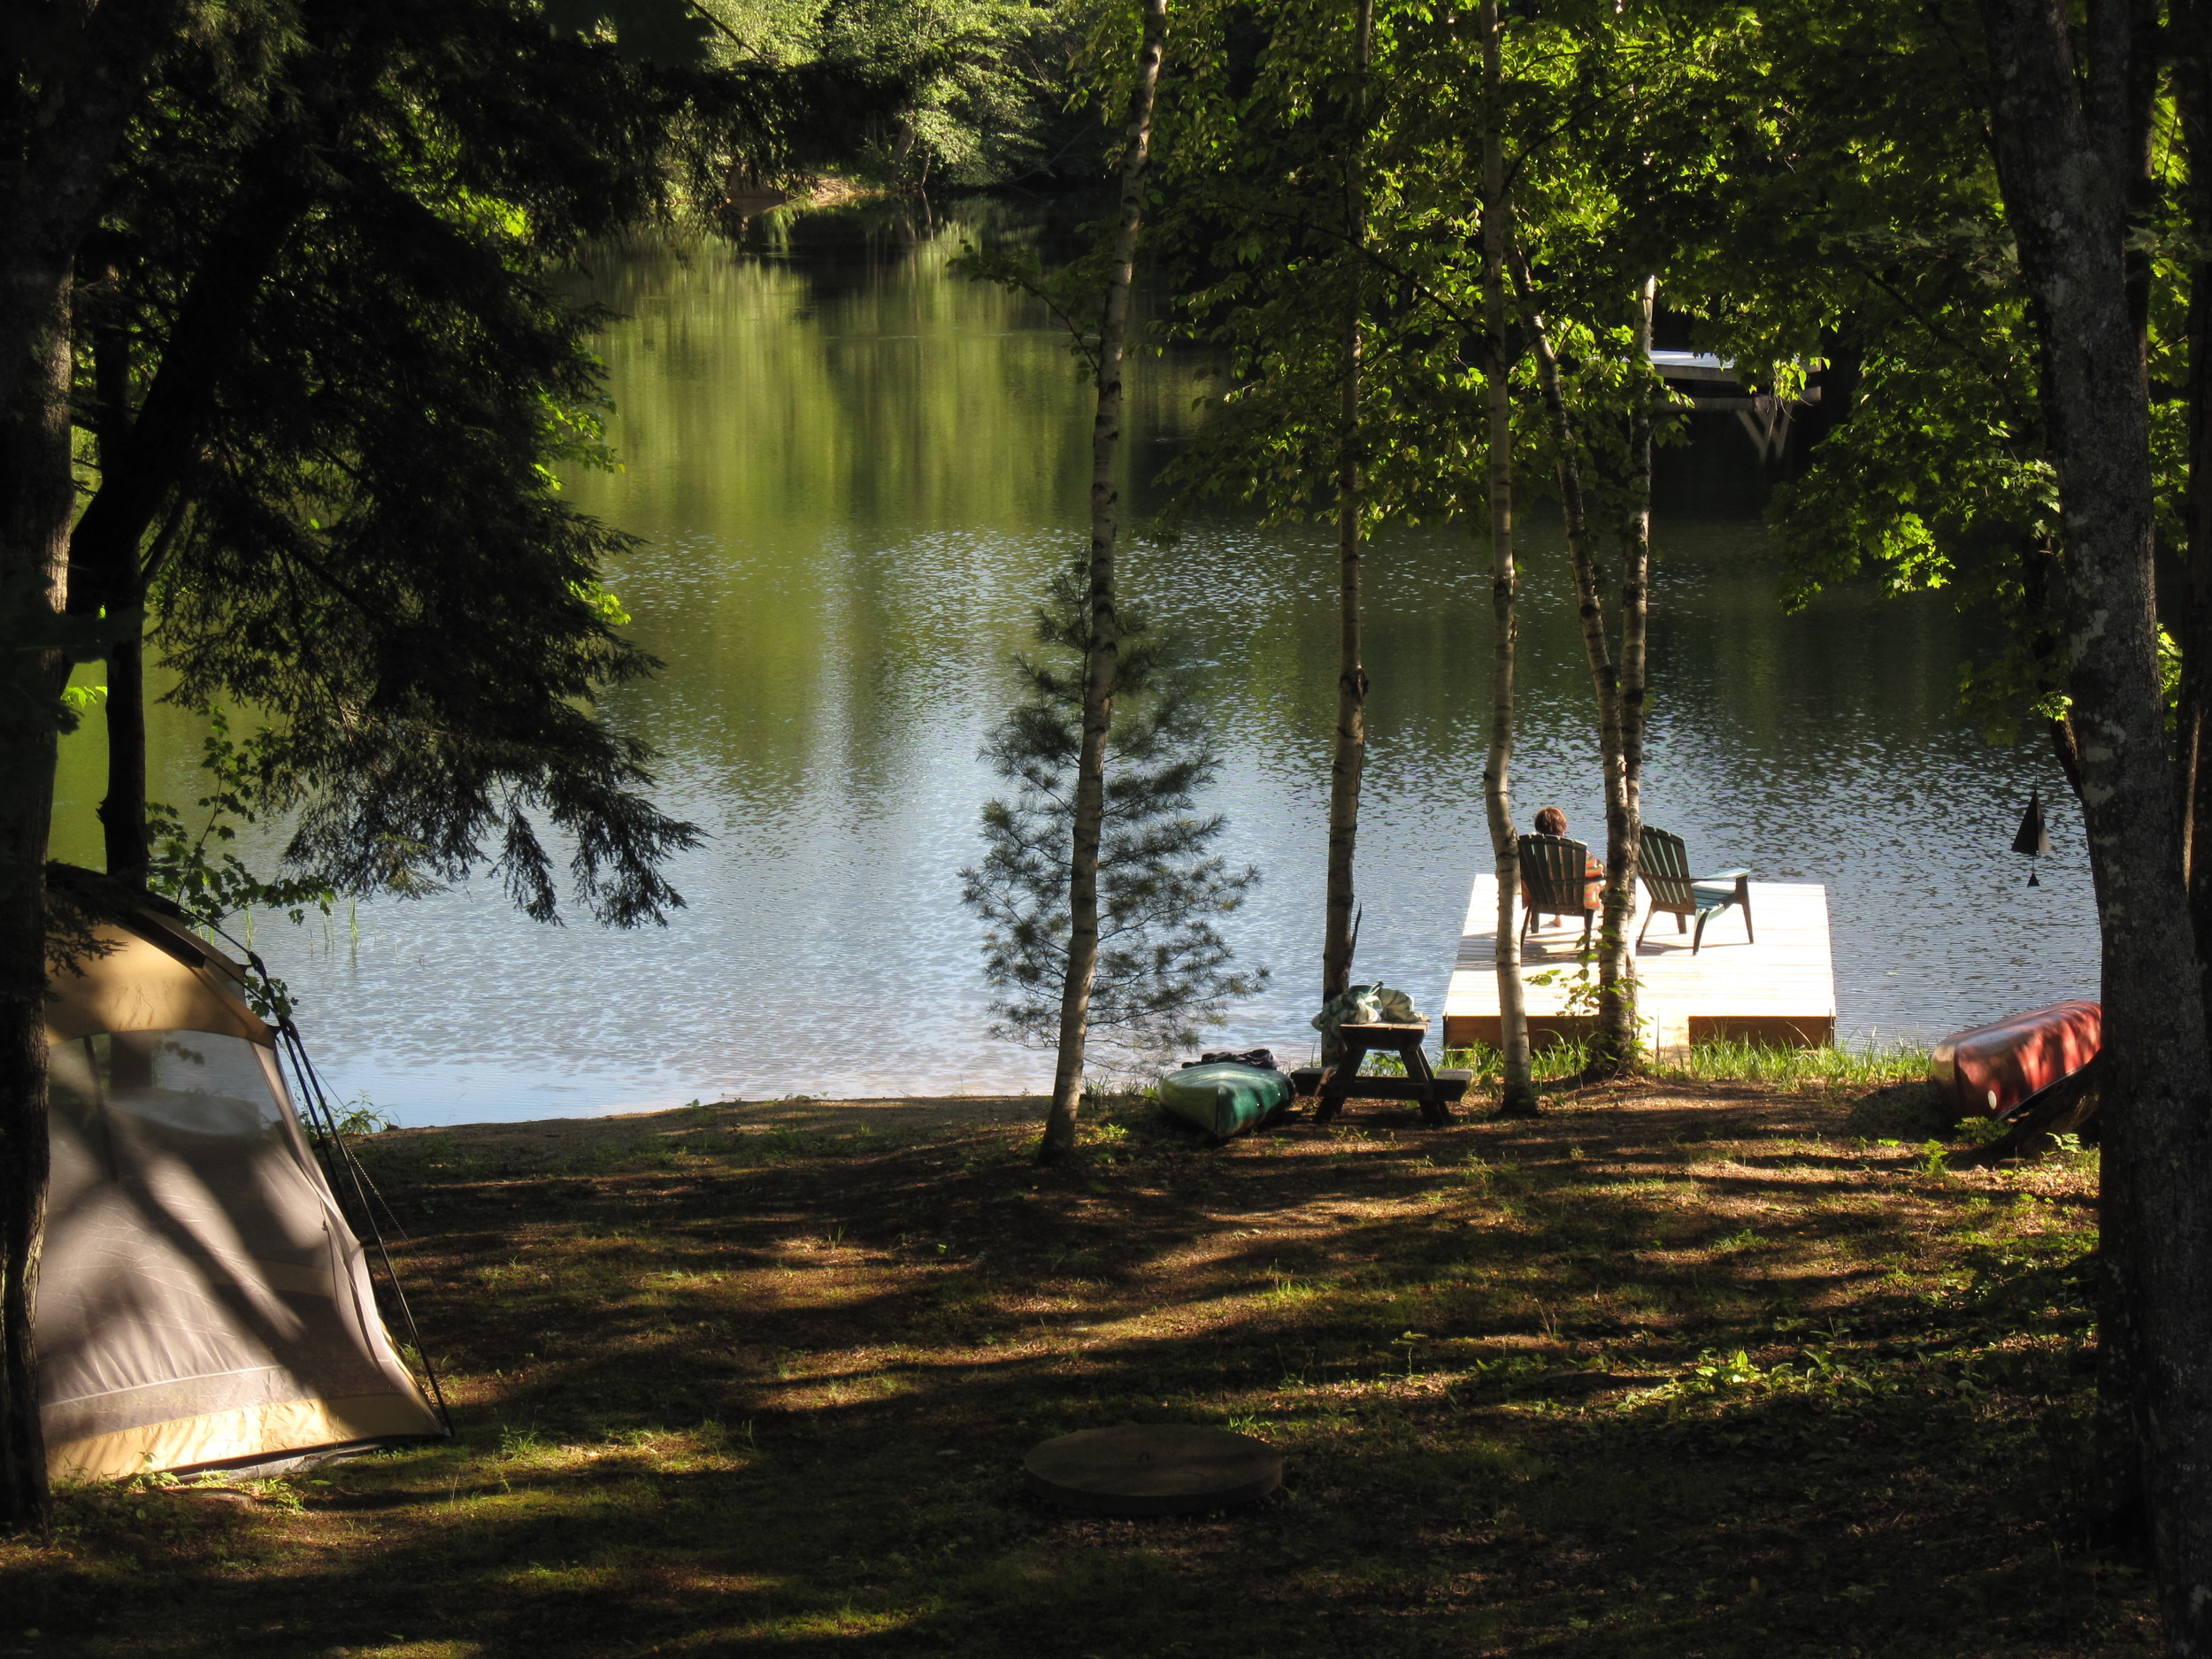 Private water access and camping.